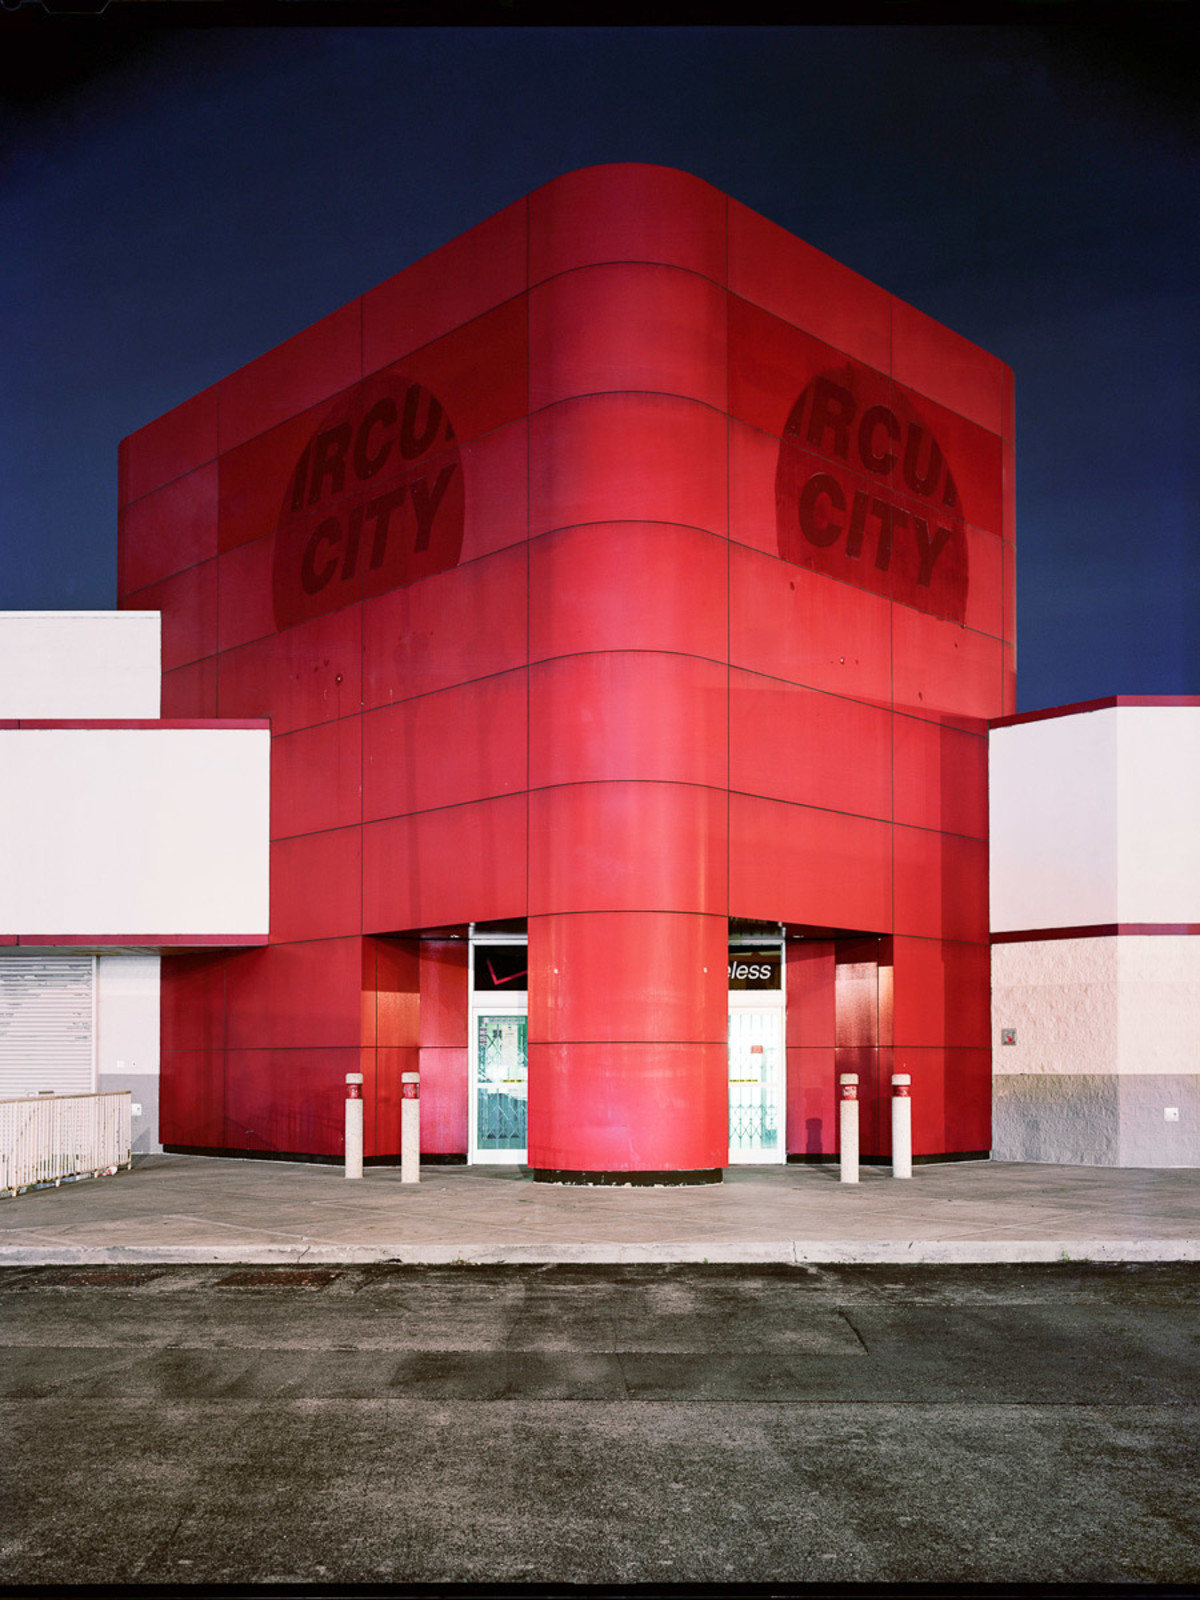 News_FotoFest 2010_Road to Nowhere_Brian Ulrich_Circuit City_2008